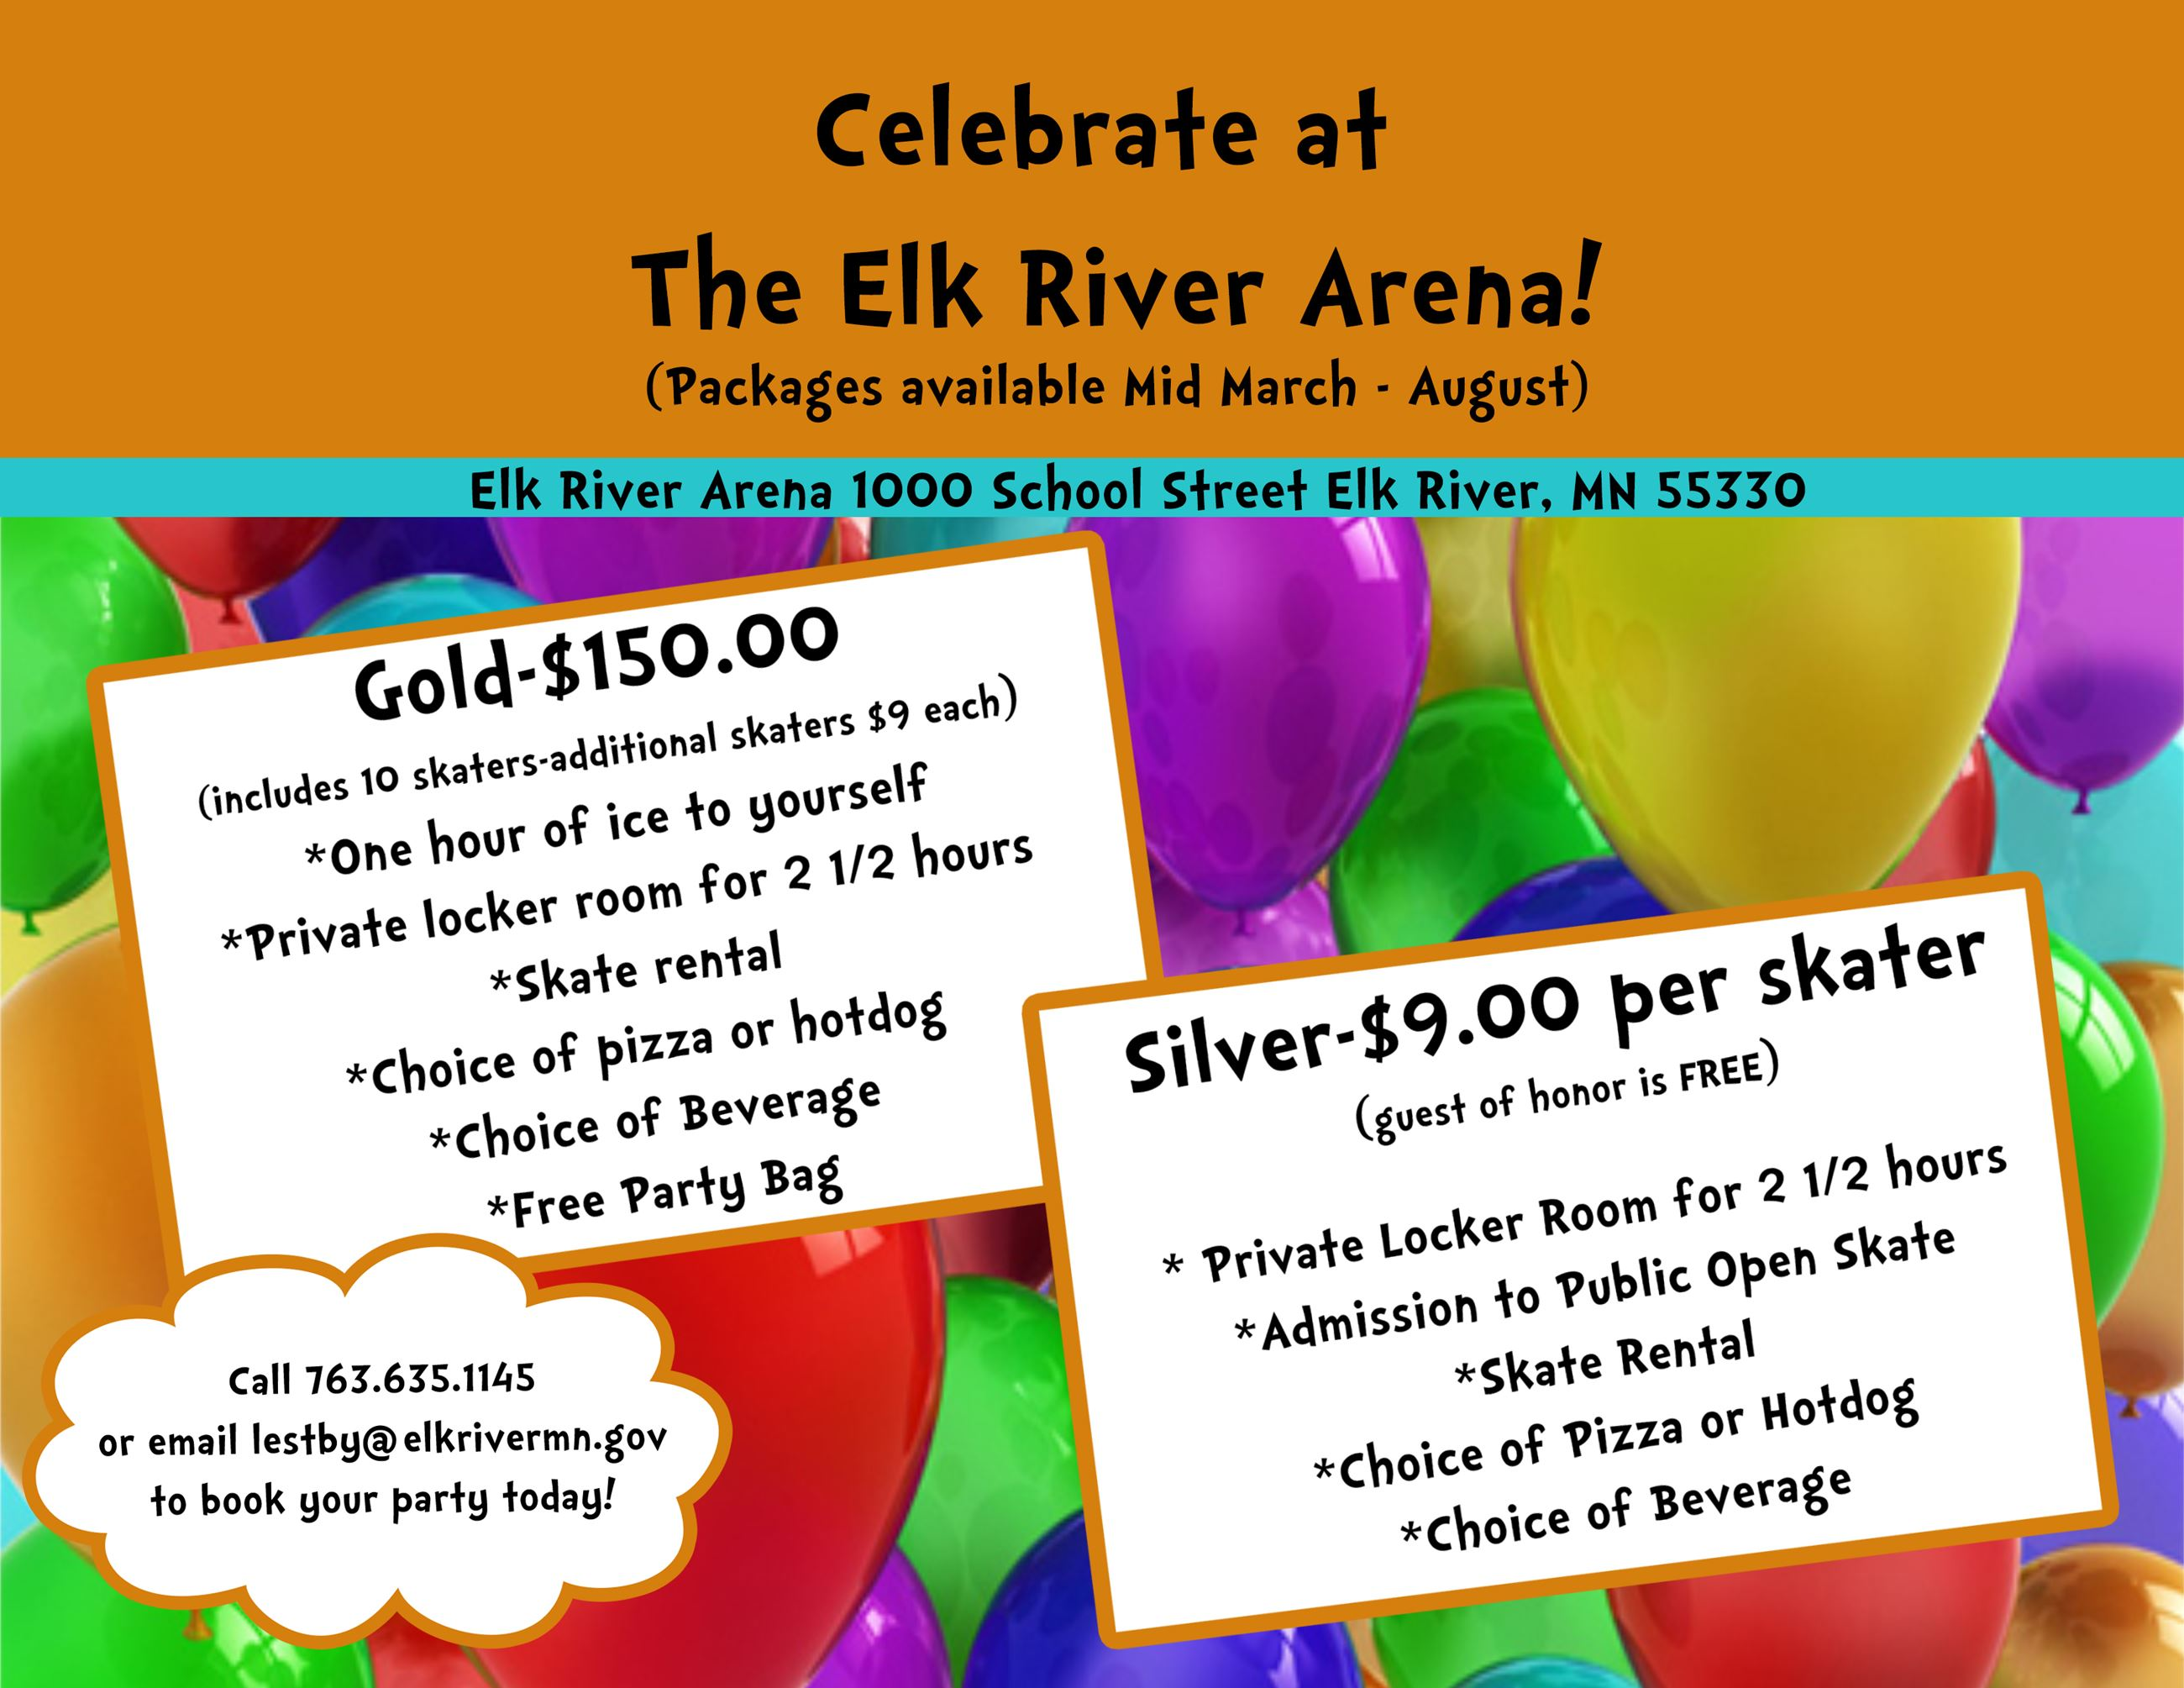 Elk River Arena | Elk River, MN - Official Website